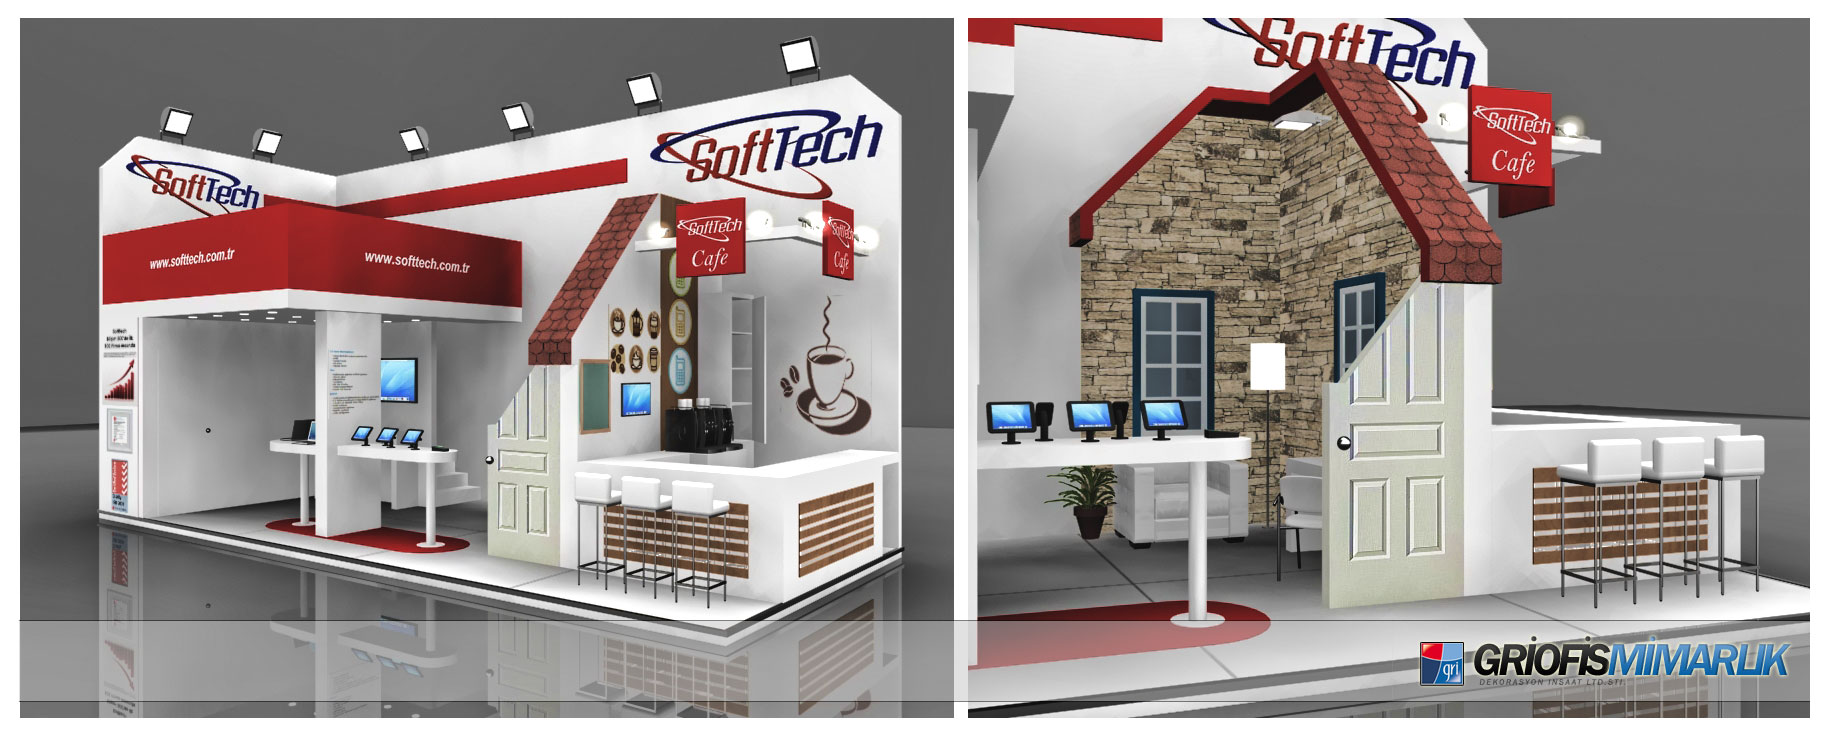 Free 3d Exhibition Stand Design : Softtech exhibition stand design d by griofismimarlik on